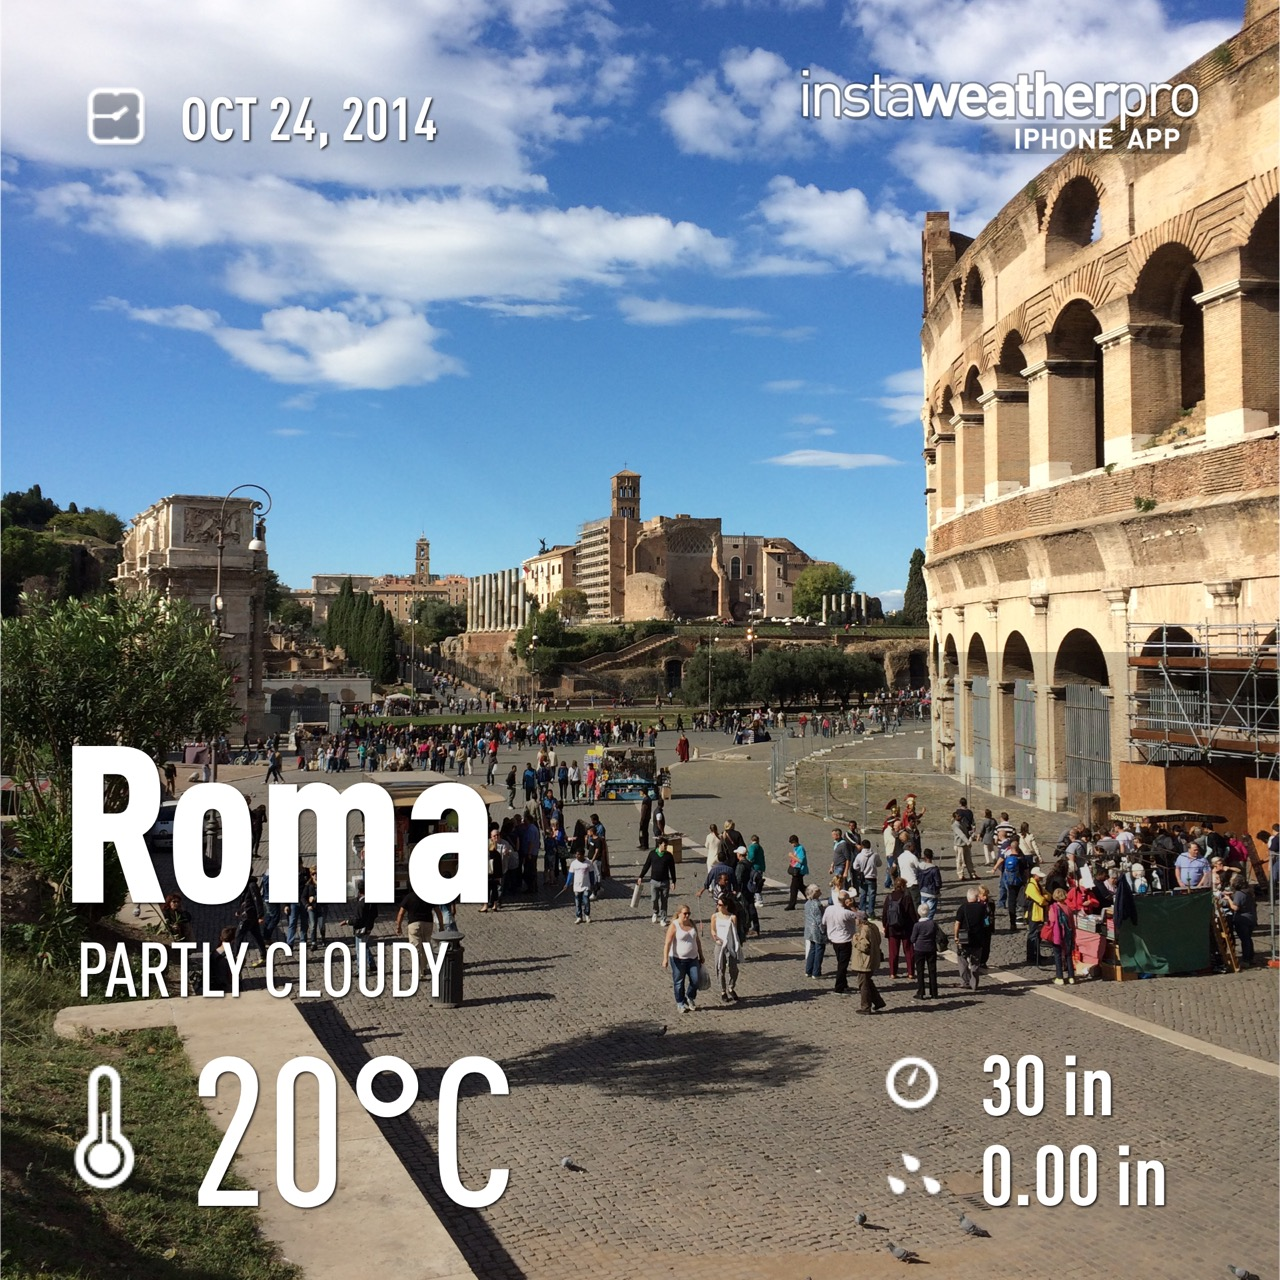 rome in october - sunny, warm and crowded!